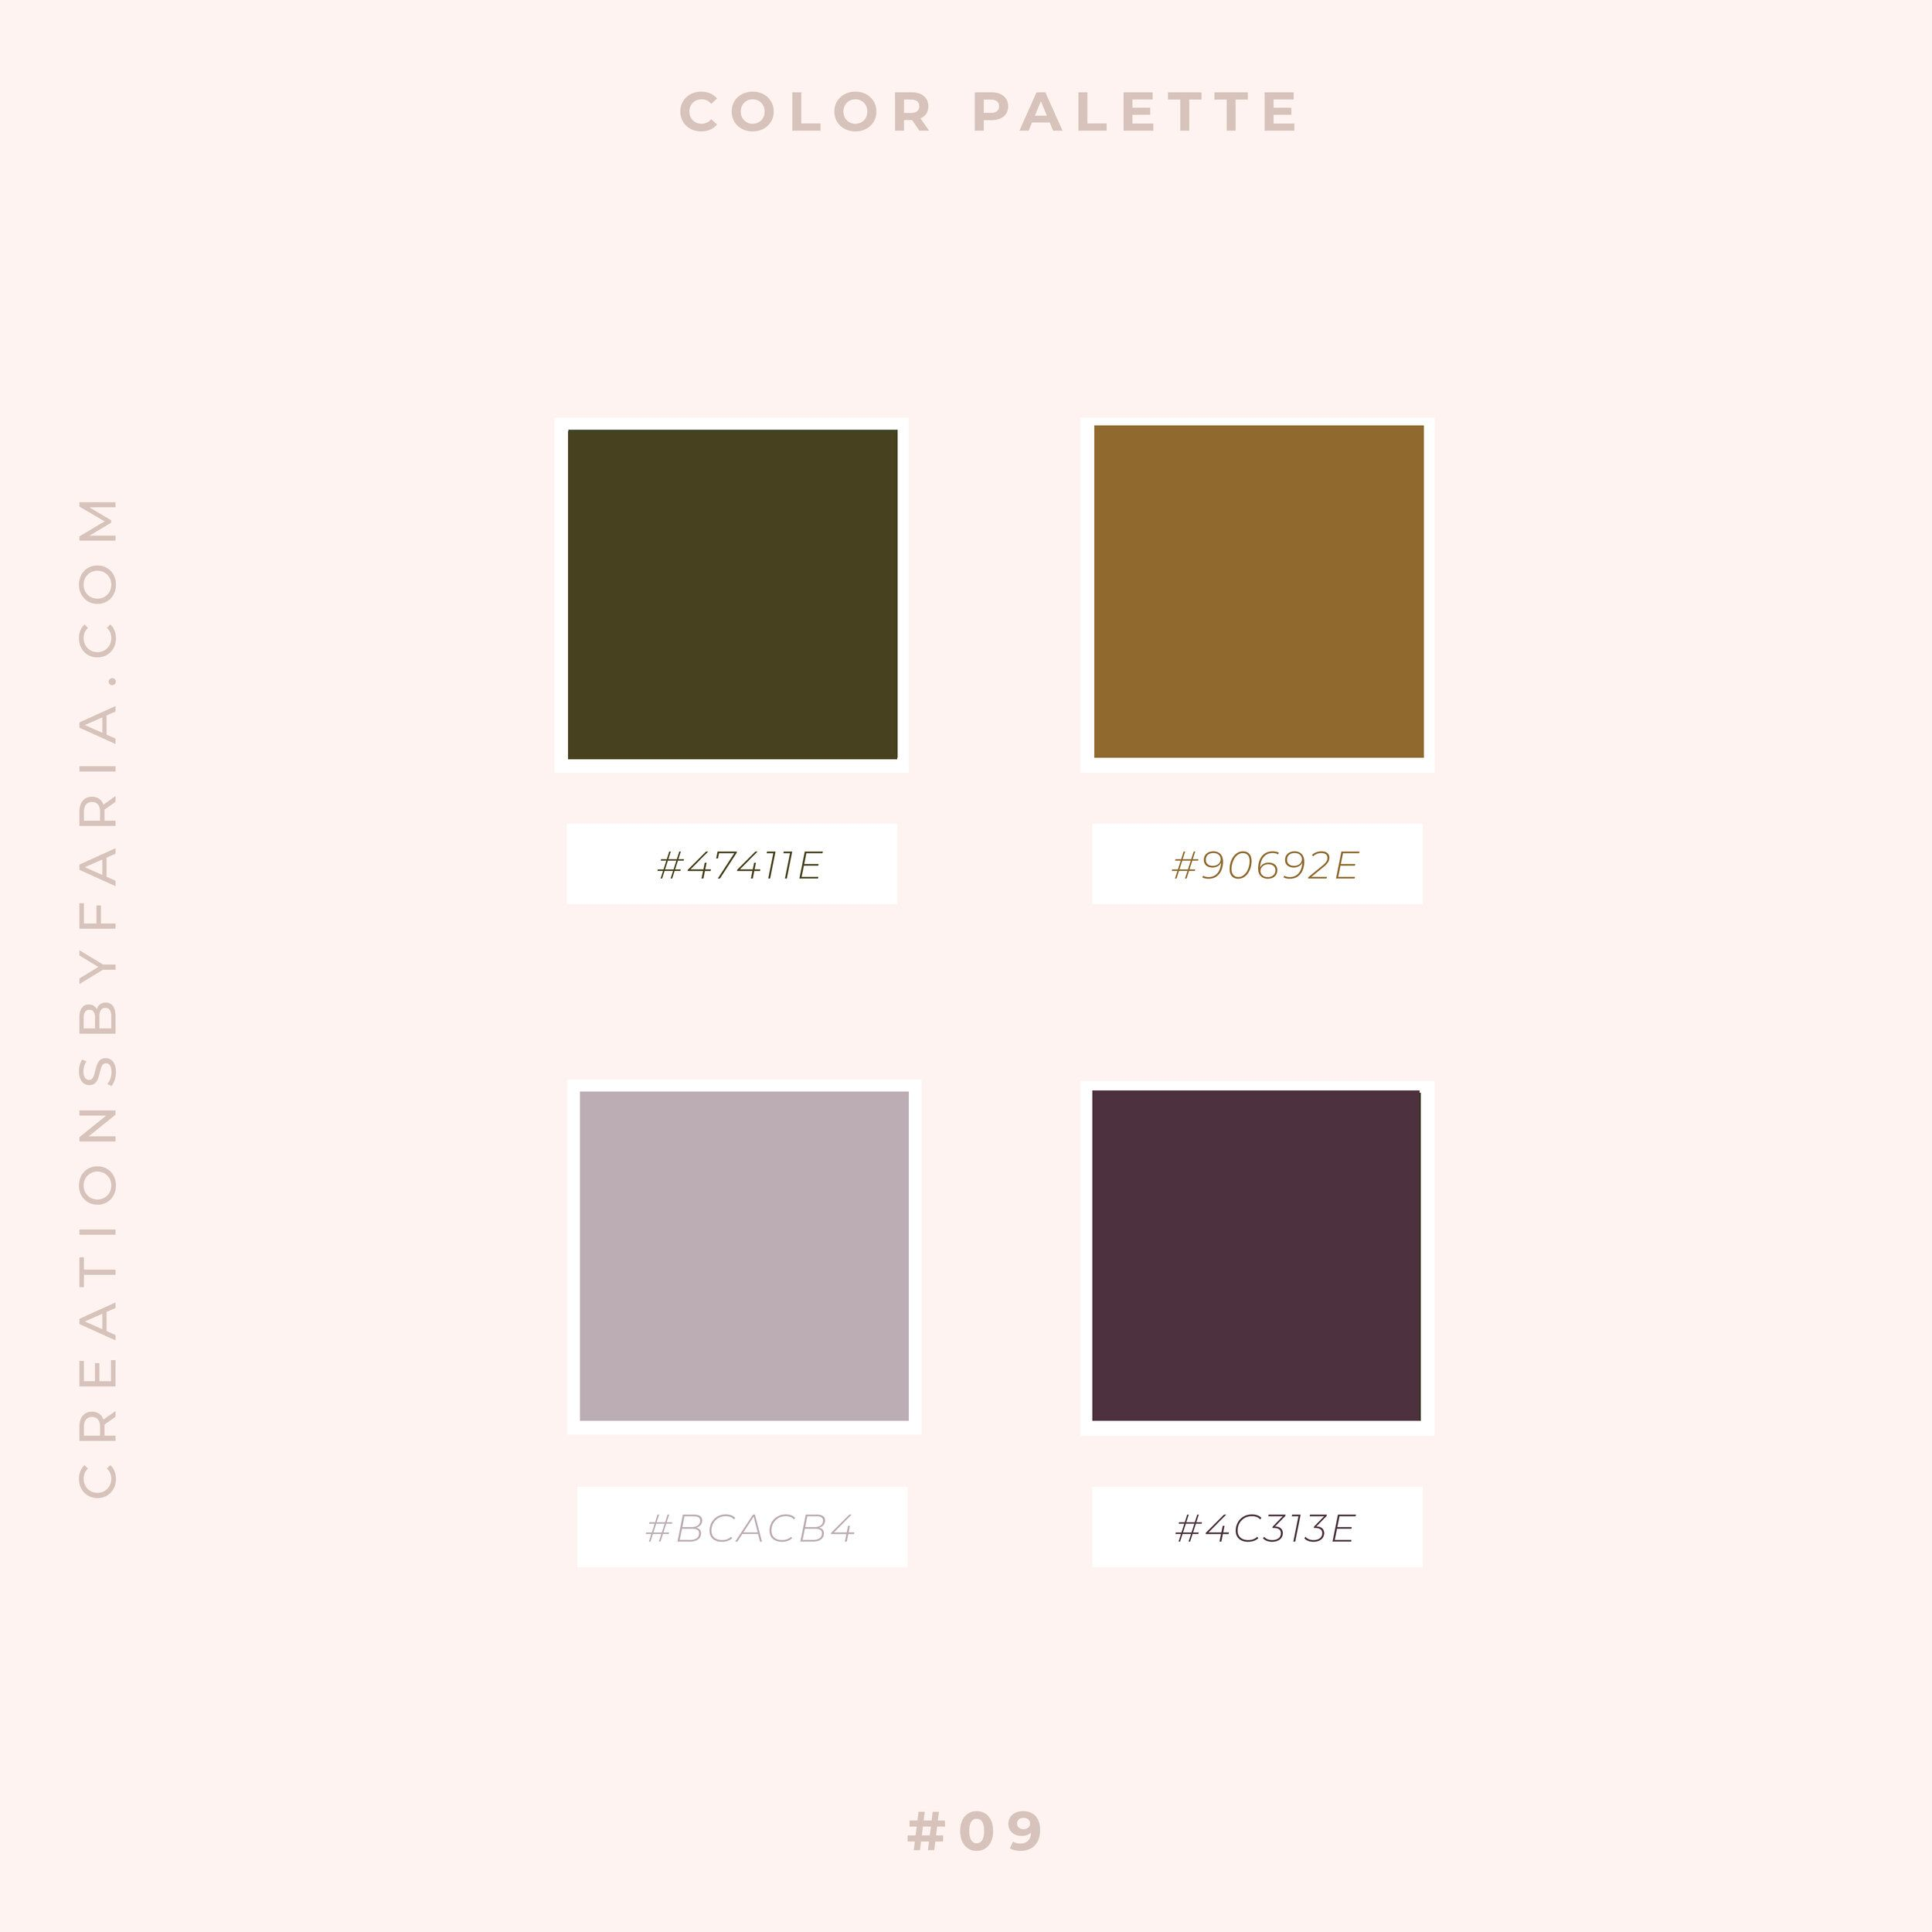 Vibrant And Modern Olive Green Vintage Gold And Plum Color Palette Creations By Faria In 2020 Squarespace Website Design Green Branding Mood Board Inspiration